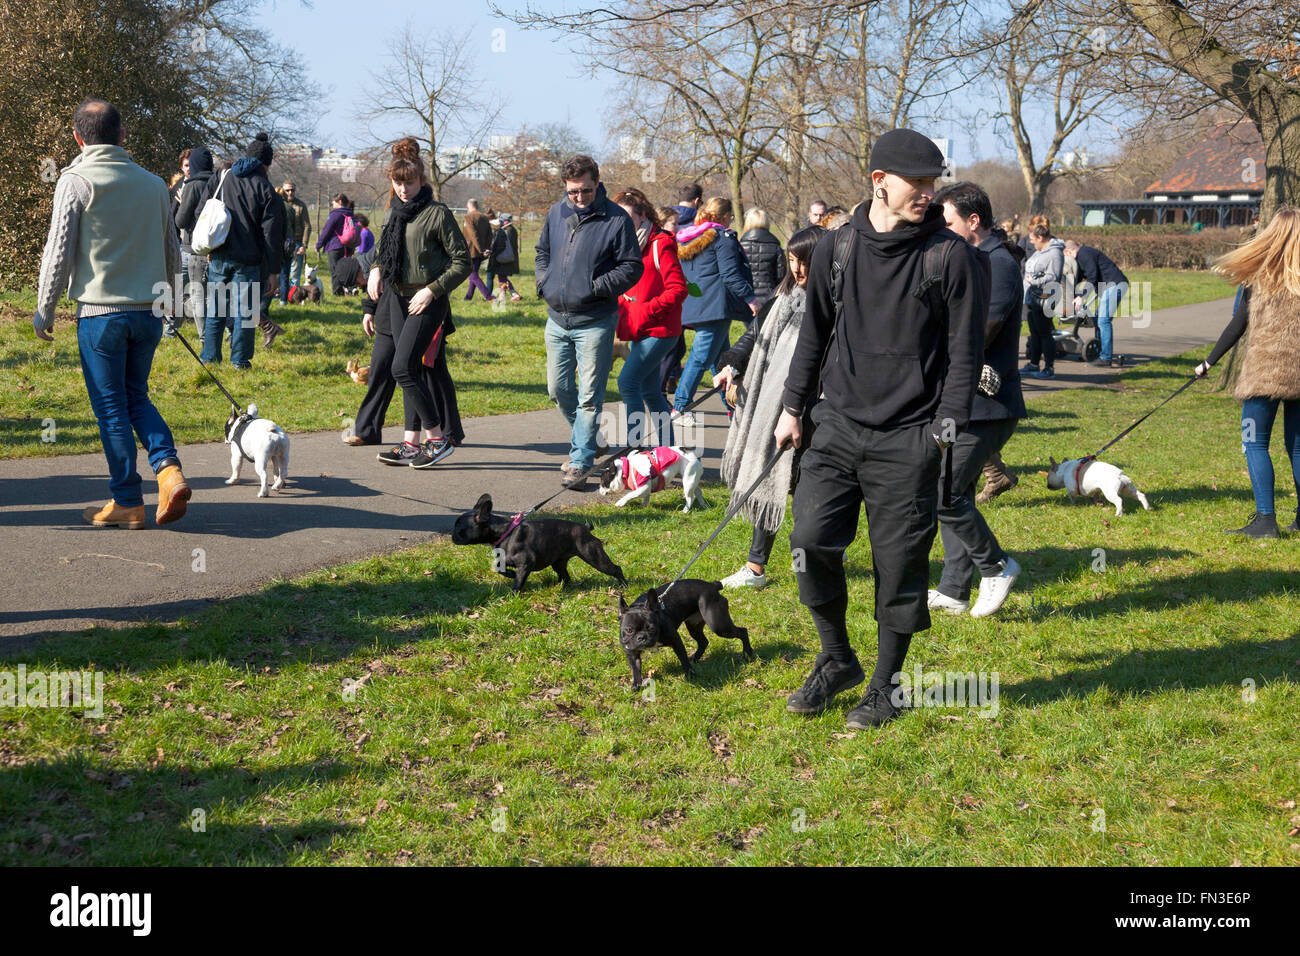 13th March 2016 - Meet-up and Walk of London french bulldog owners in Regent's Park, London, UK - Stock Image